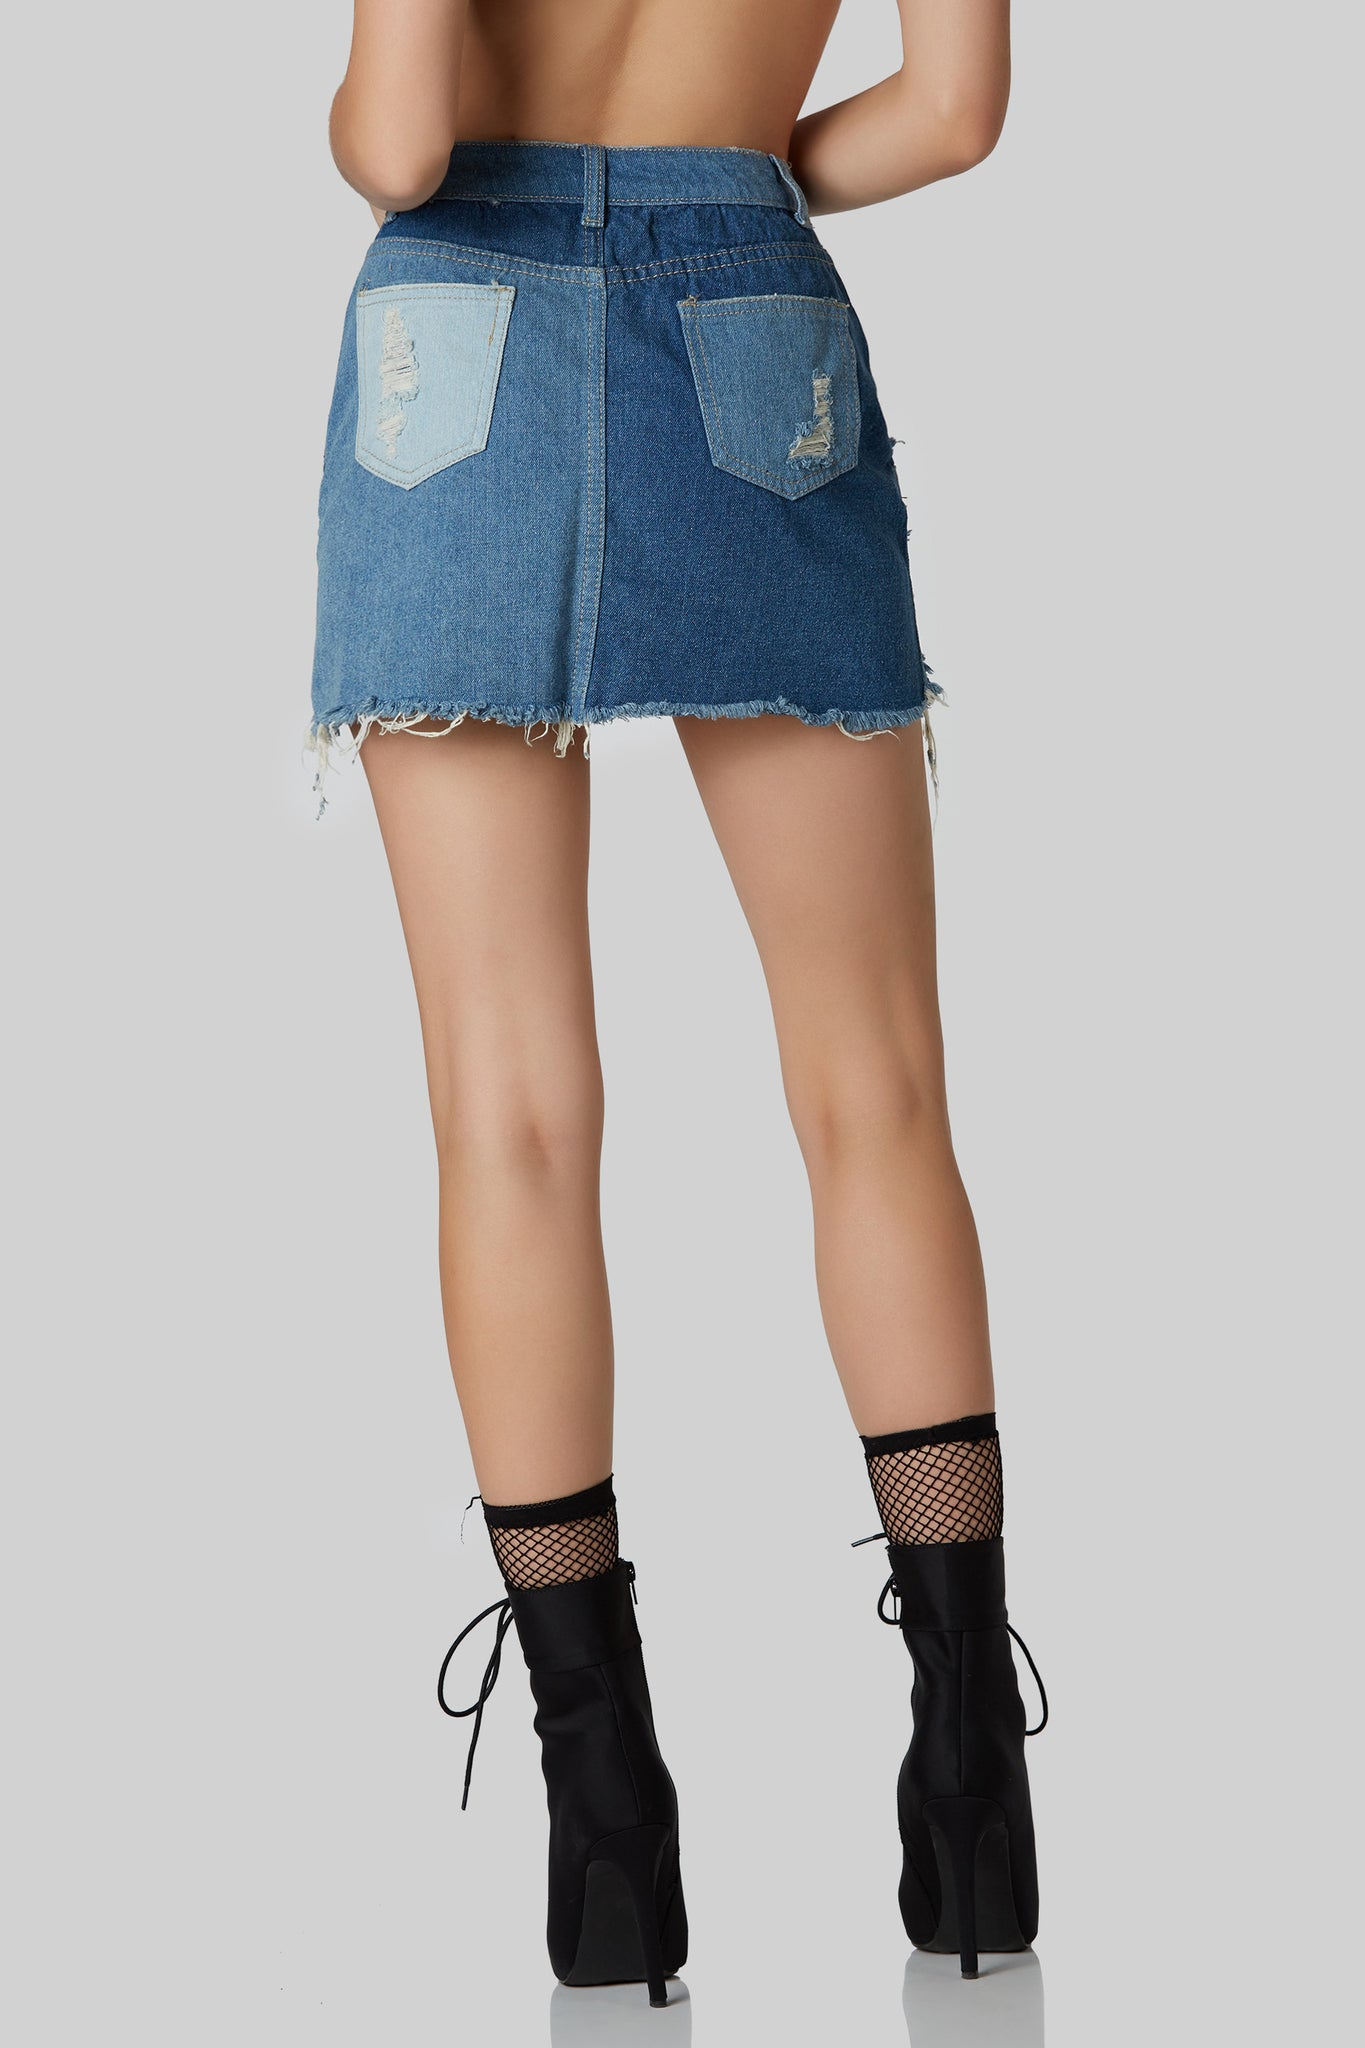 Distressed mid rise denim skirt with color block patched design. Frayed raw hem finish with button and zip closure.